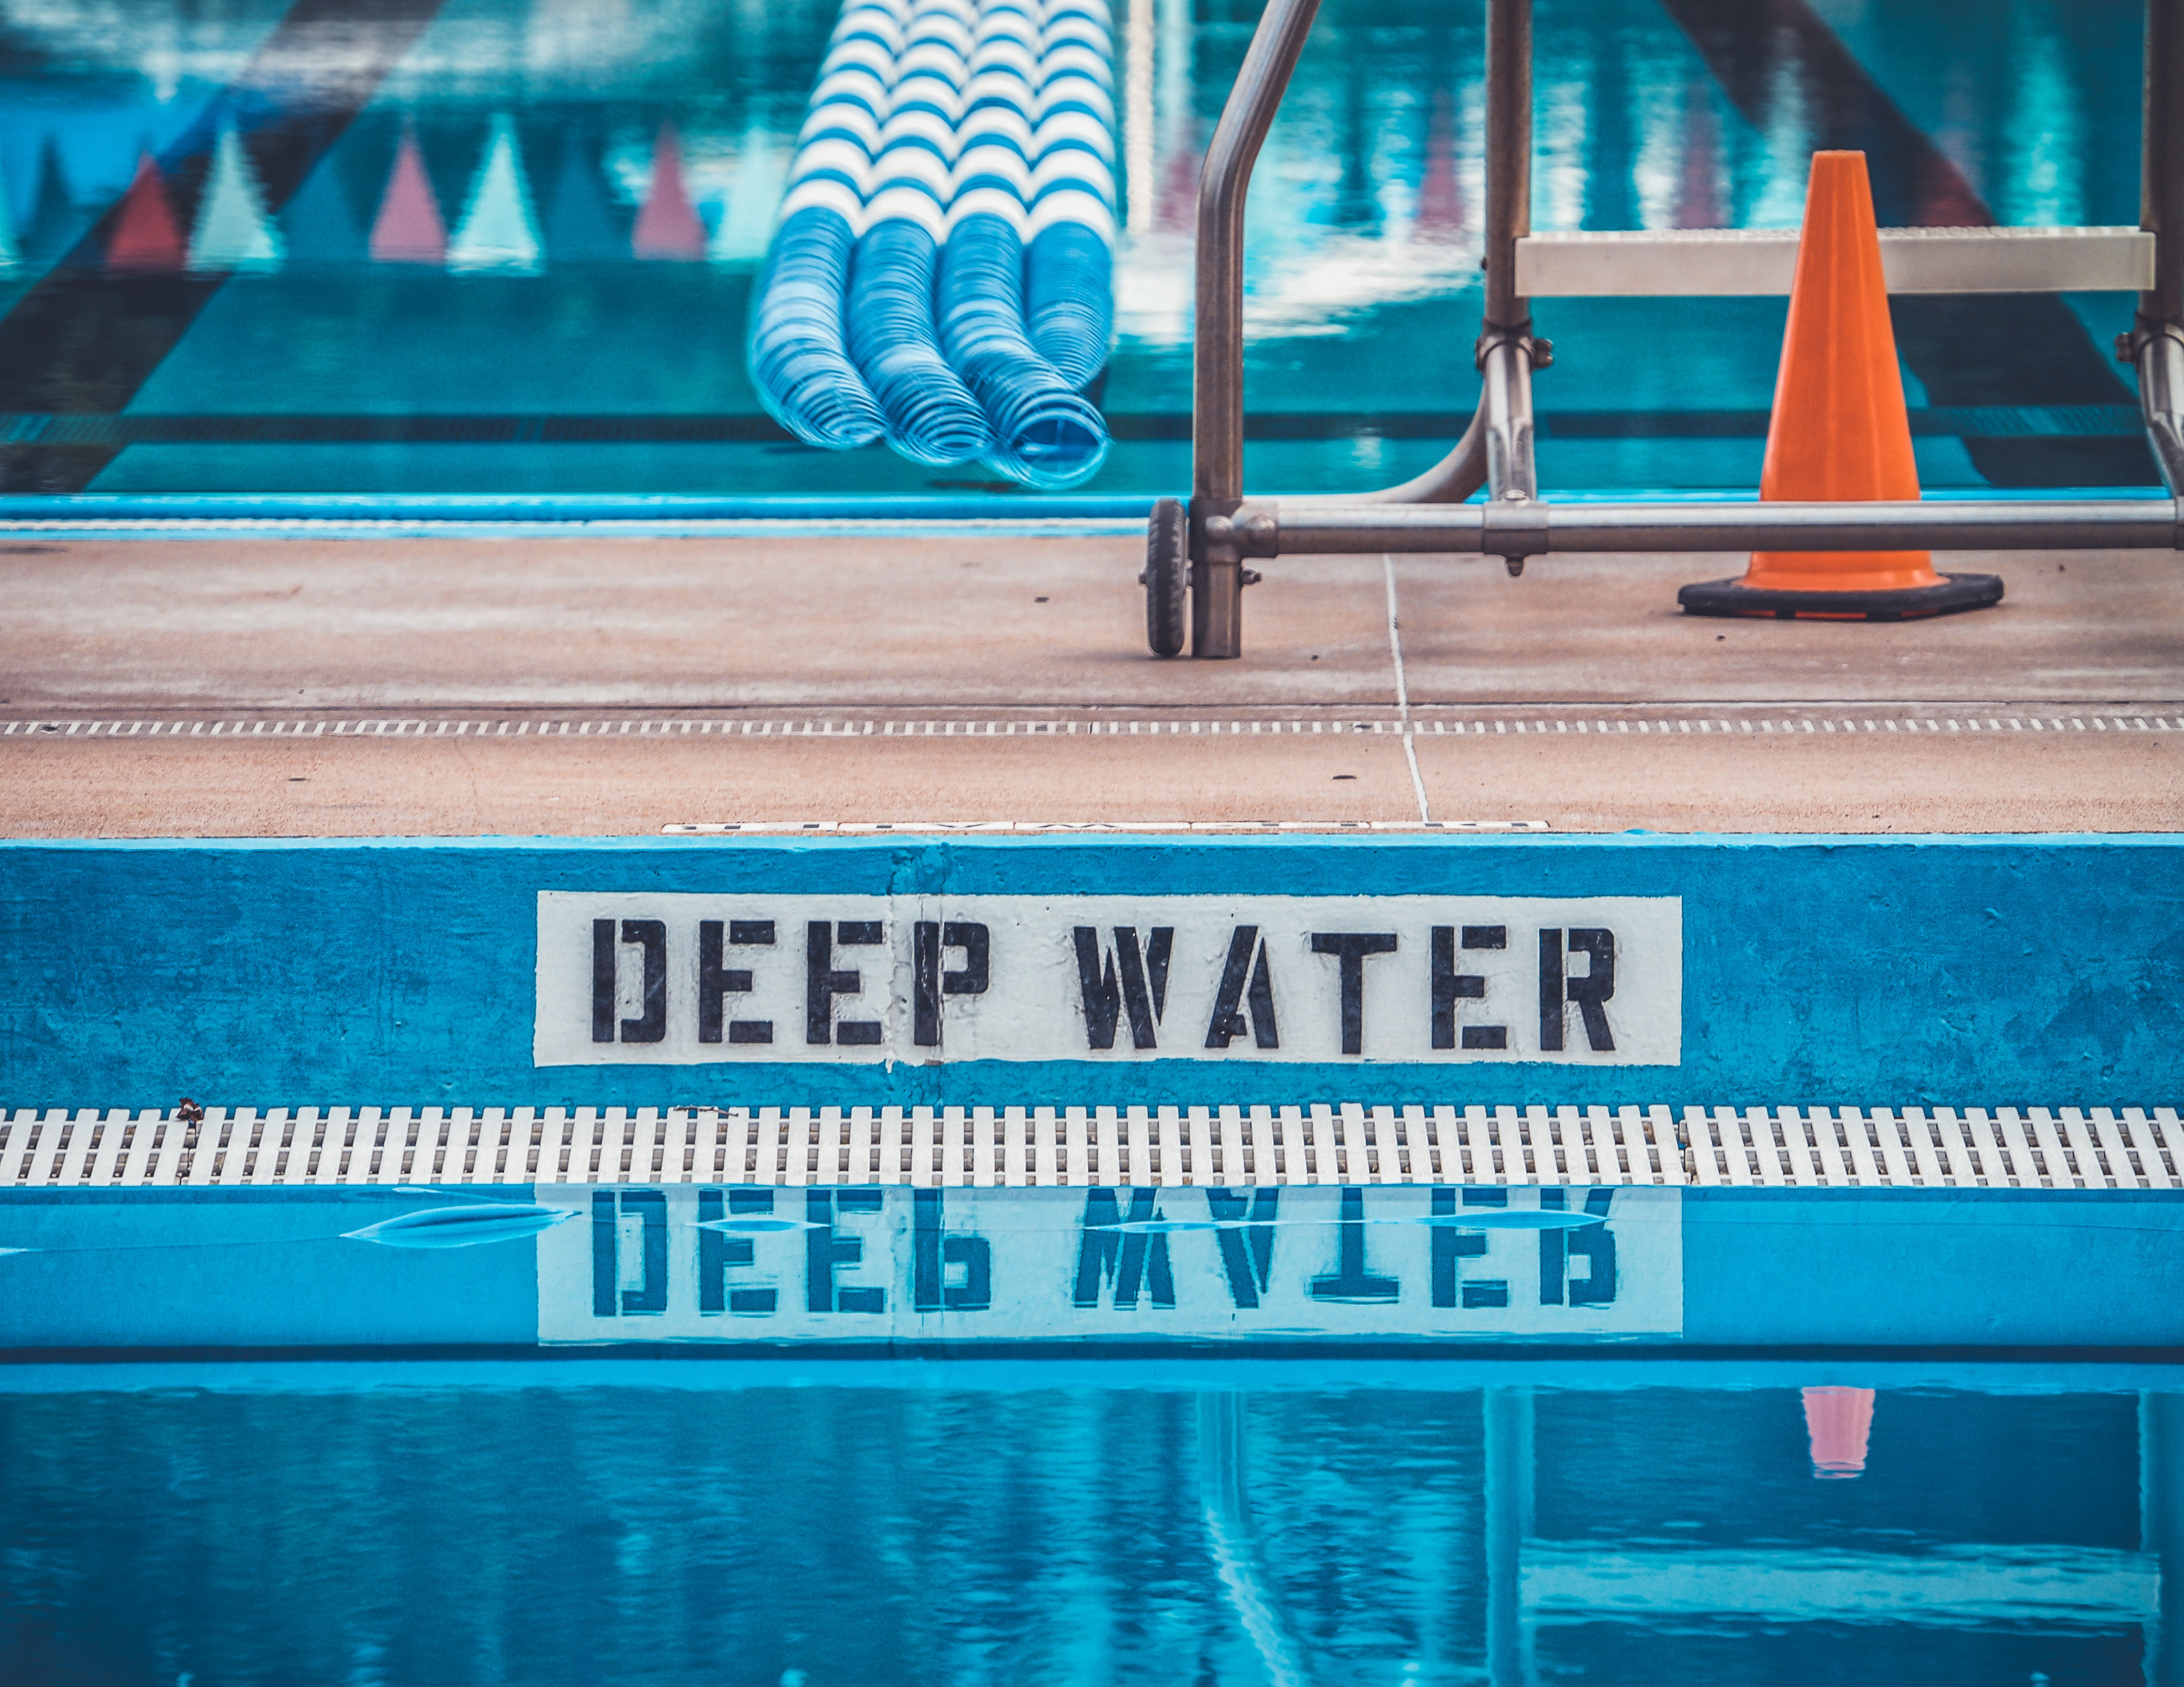 Deep water signage